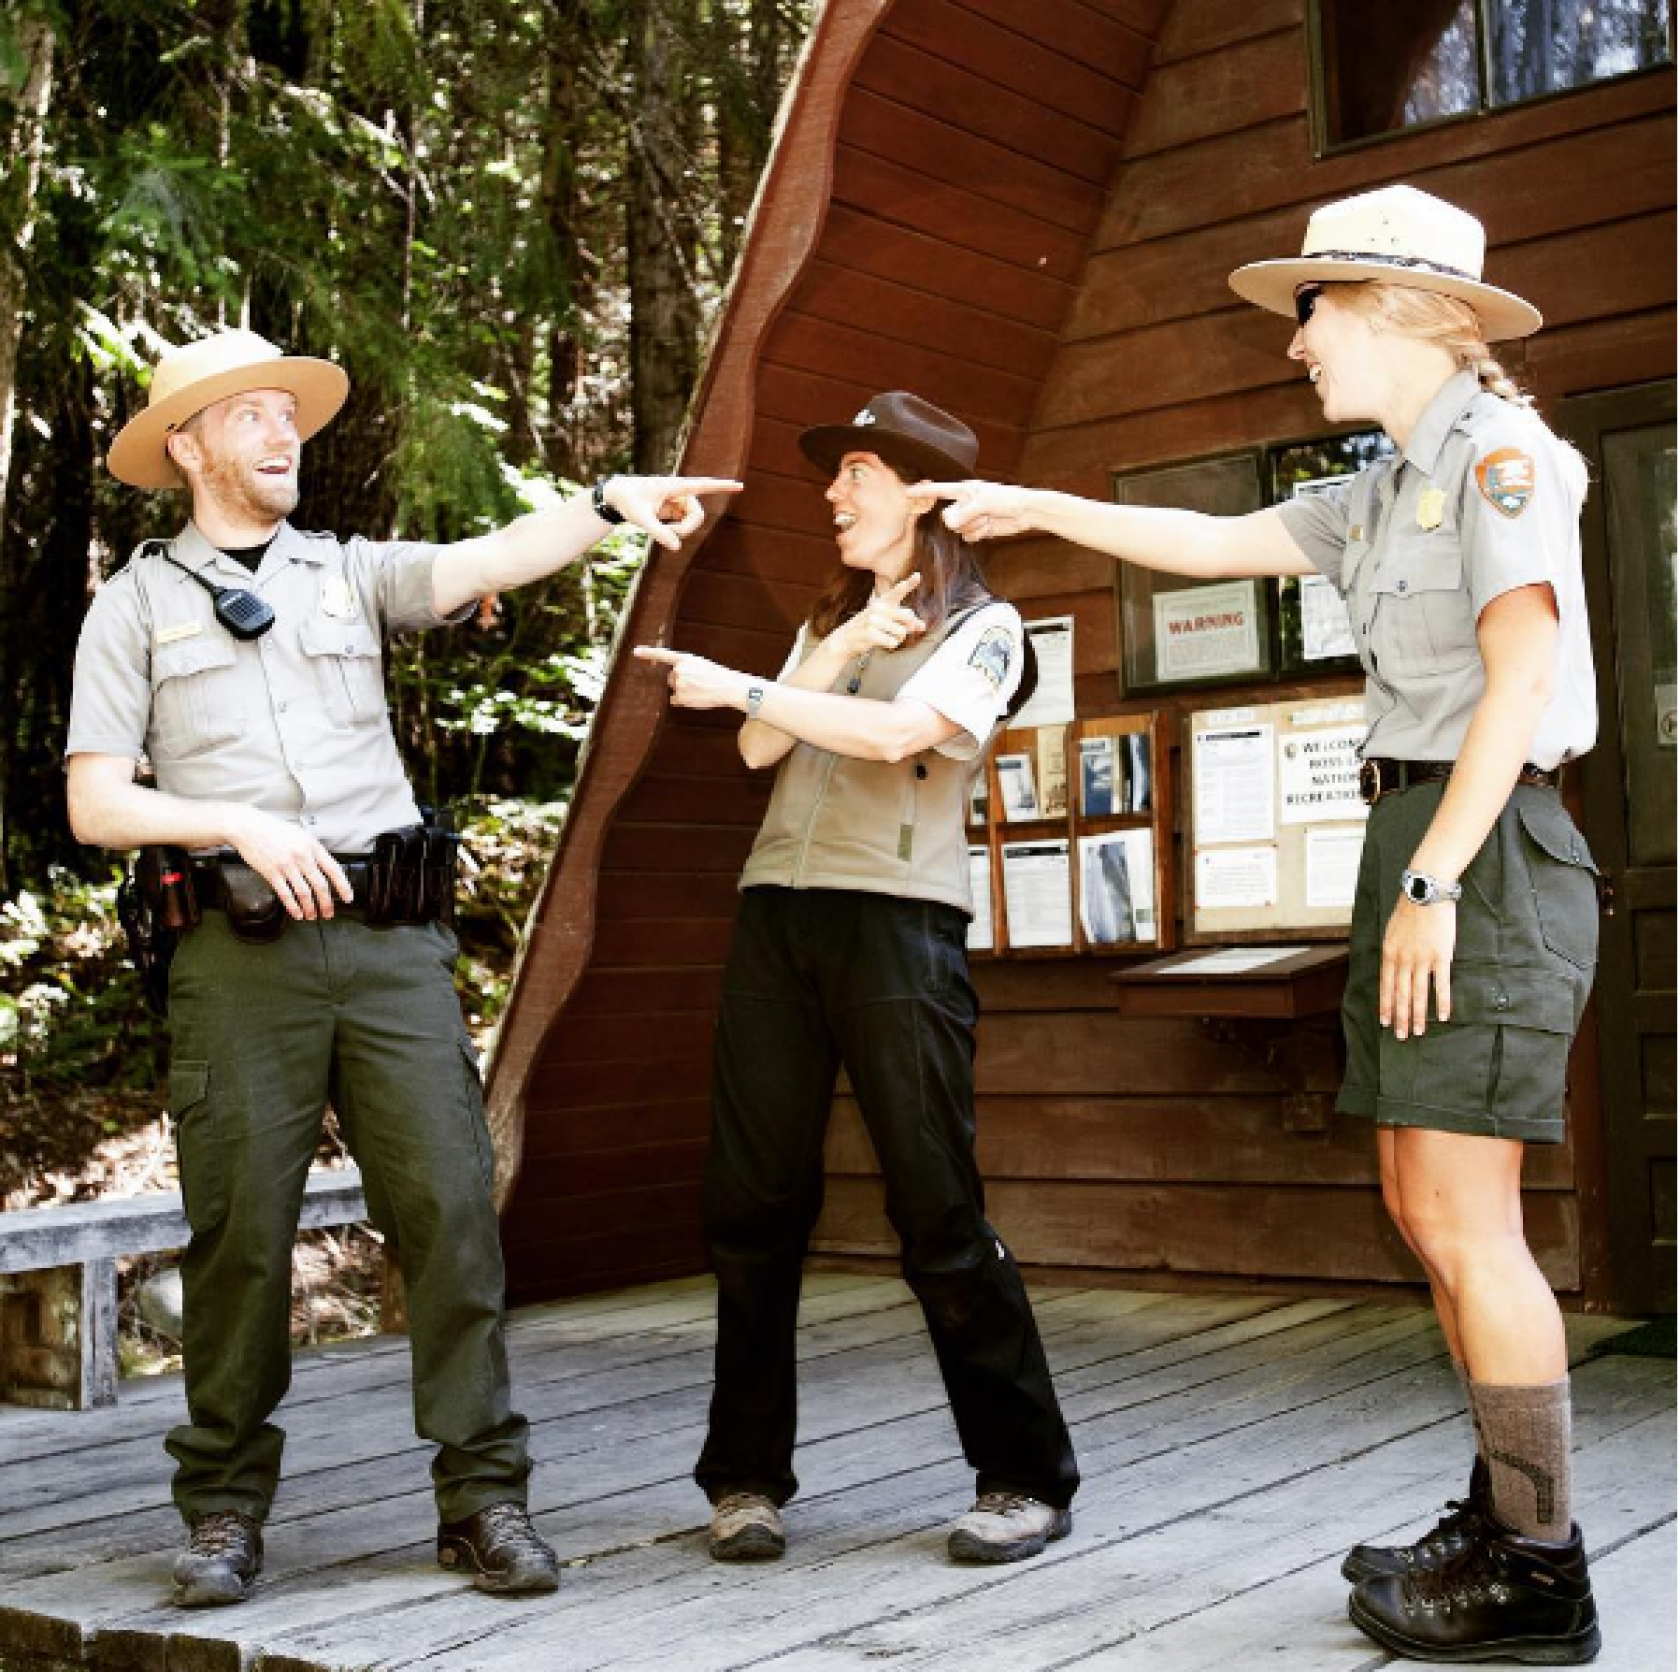 Three park rangers laughing and point at each other in front of a forest lodge